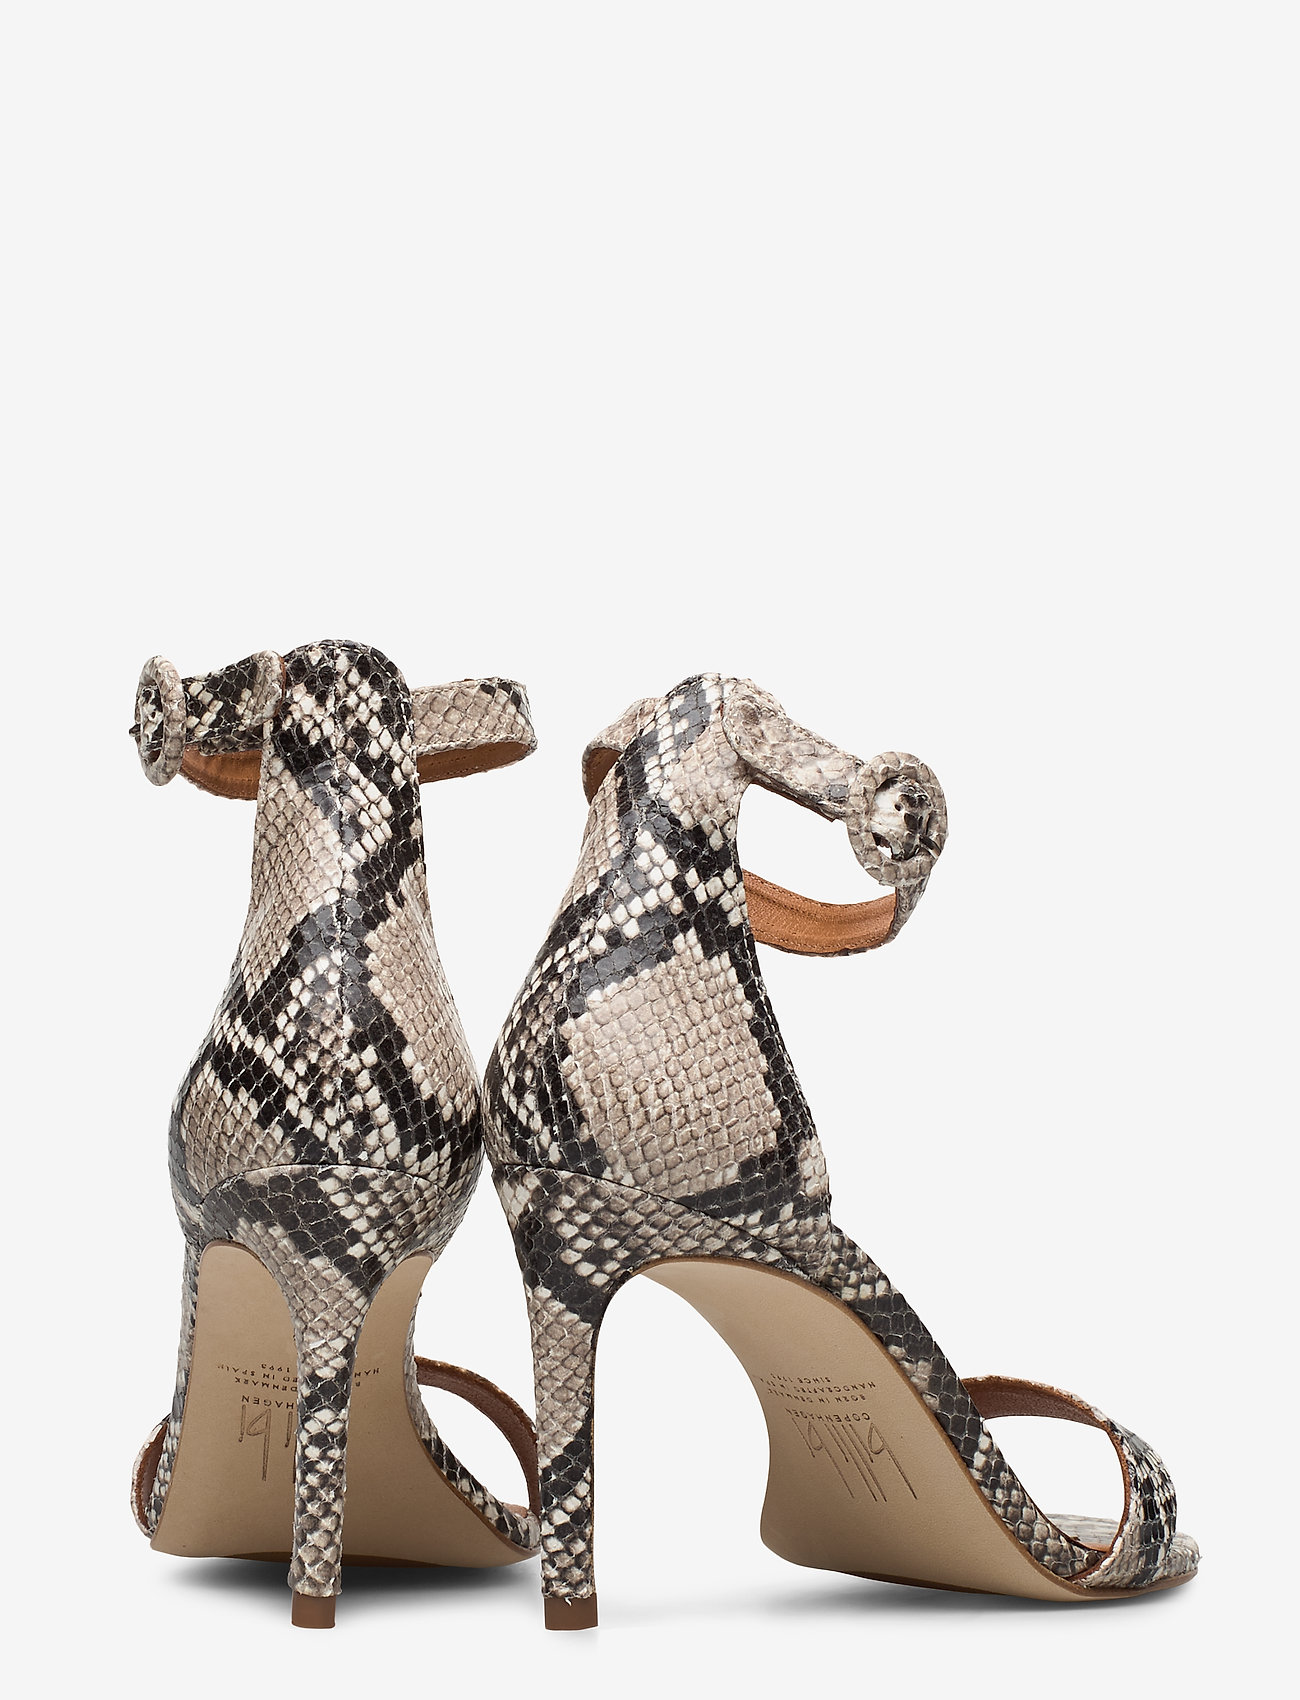 Sandals 4693 (Off White Snake R) - Billi Bi